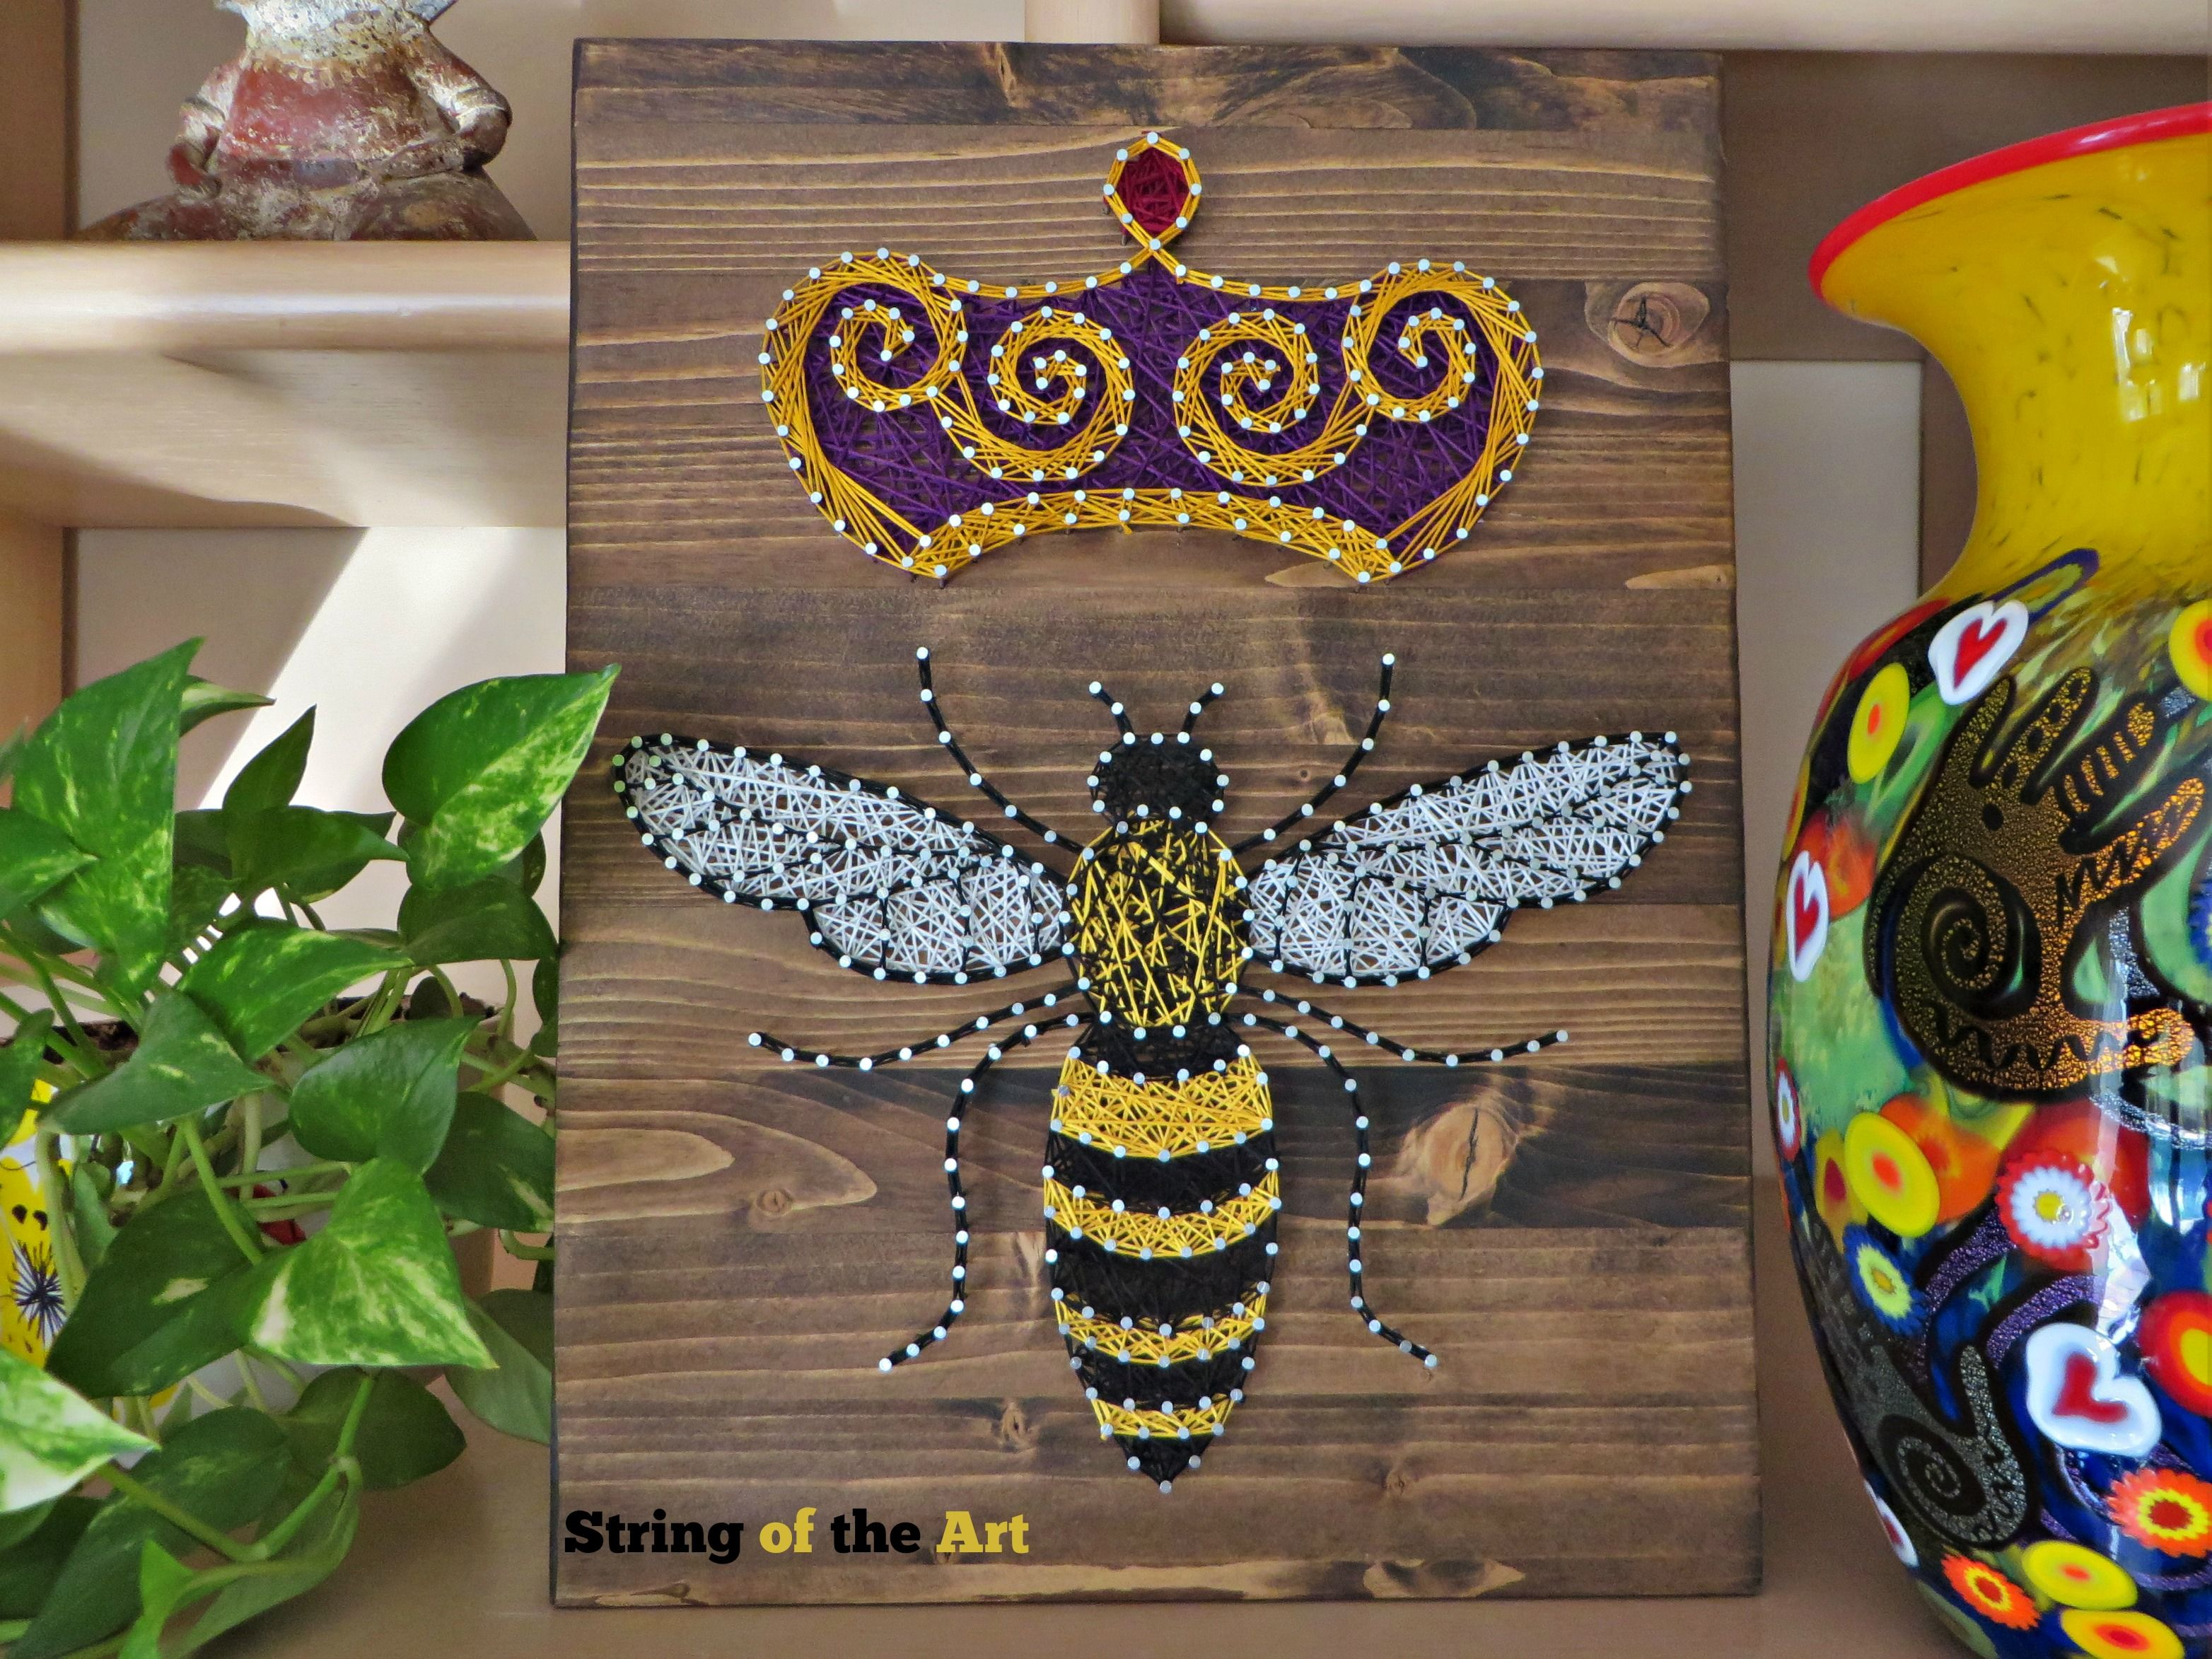 Queen Bee String Art DIY Kit - String Art Home Decor, Queen Bee with ...